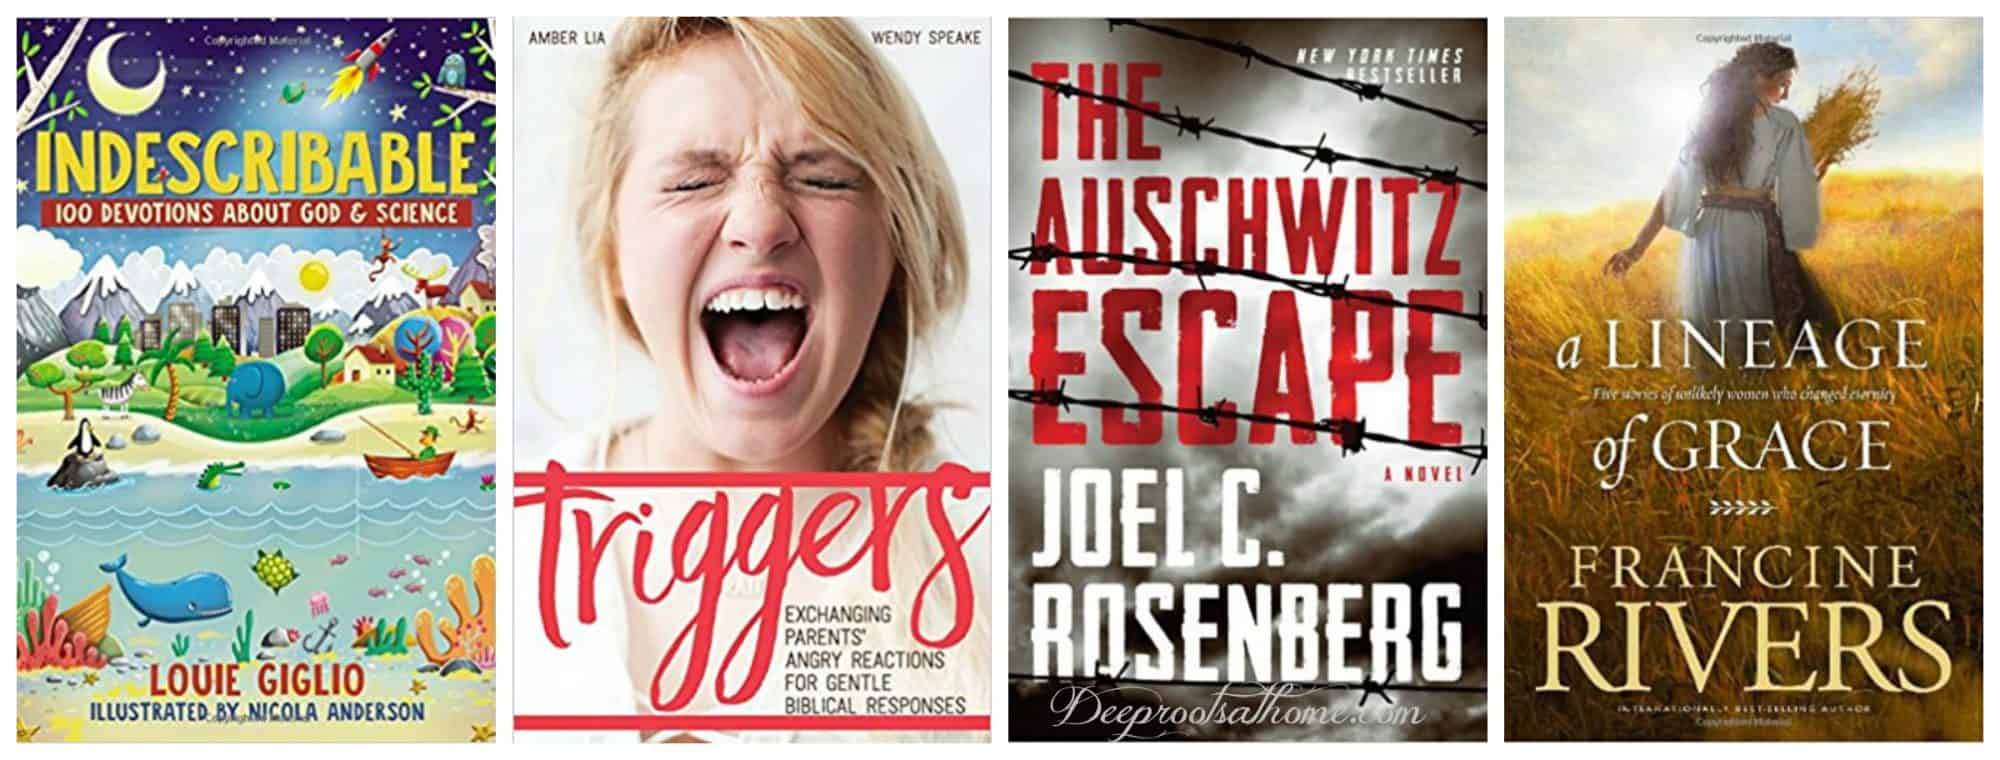 2018 Reading List: New and {Worthy To Be Revisited} Older Books. 4 book covers: The Auschwitz Escape by Joel C. Rosenberg; Indescribable: 100 Devotions for Kids by Louie Giglio; Triggers, Parents' Angry Reactions, Gentle Biblical Responses by Amber Lia and Lineage of Grace by Francine Rivers.